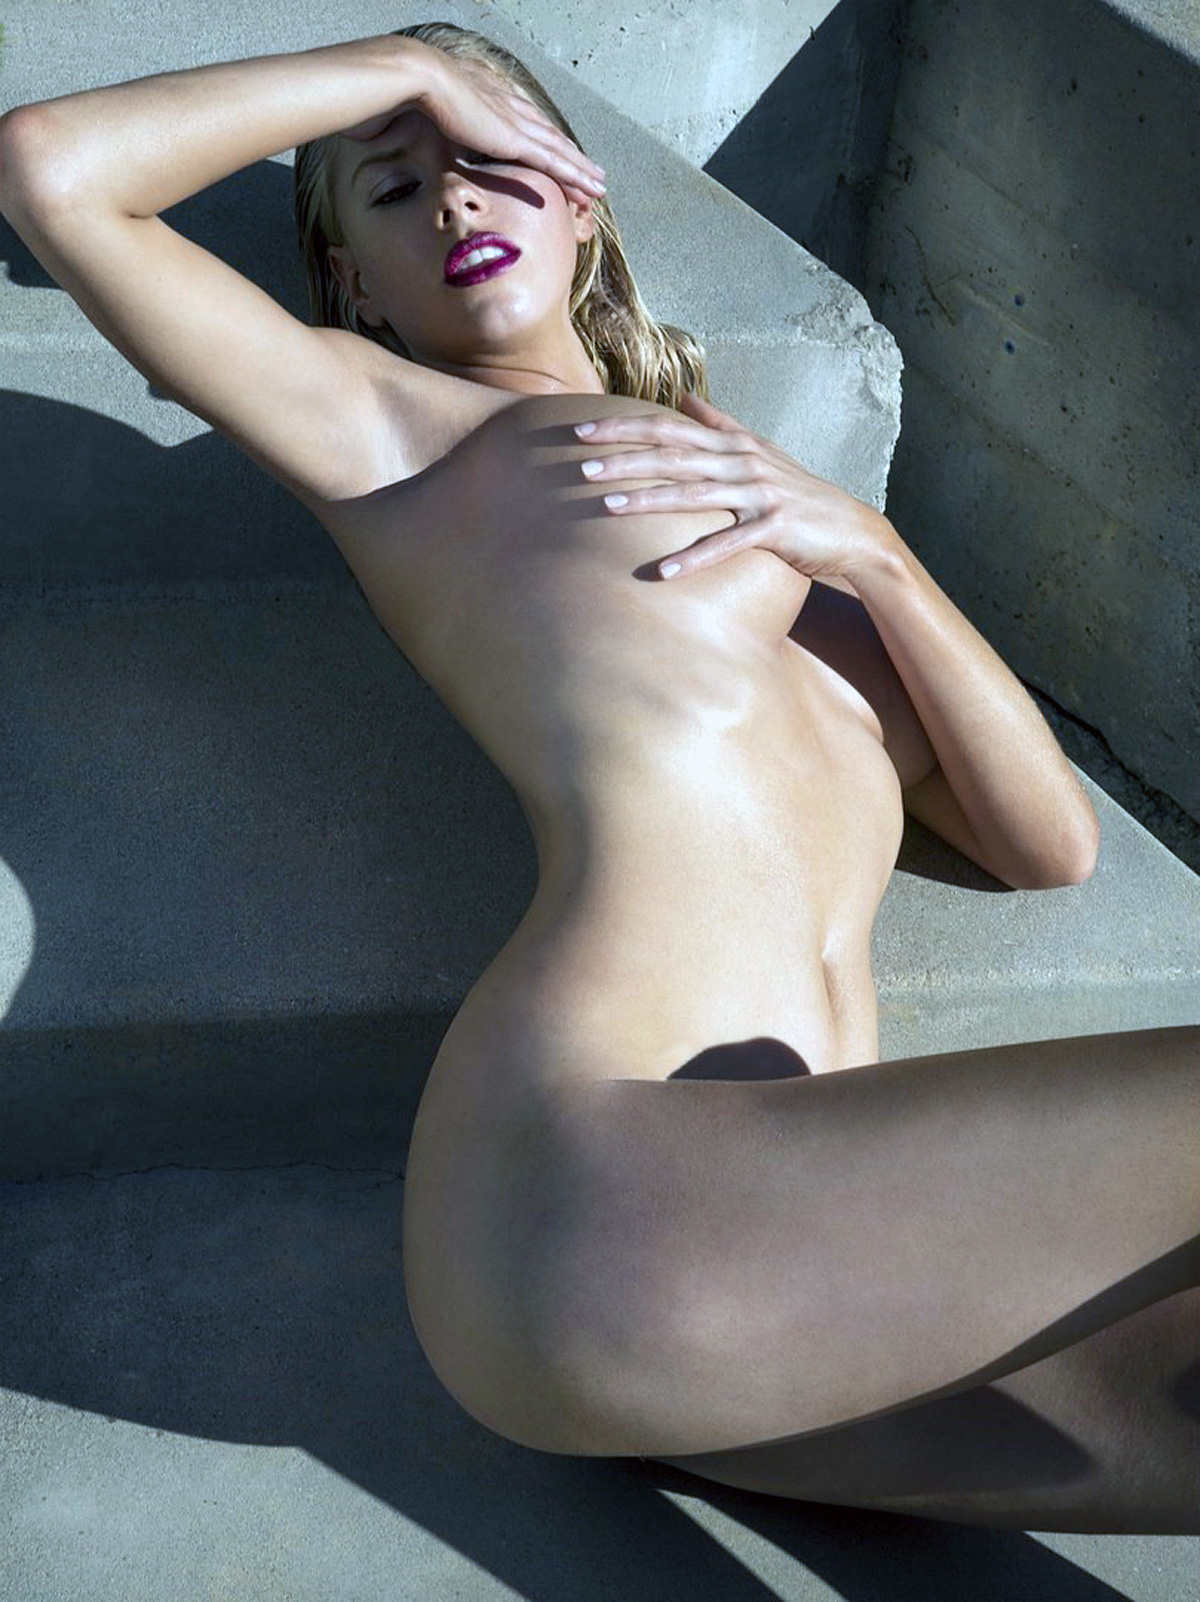 Charlotte McKinney Nude Cell Phone Photos Leaked - 2019 year